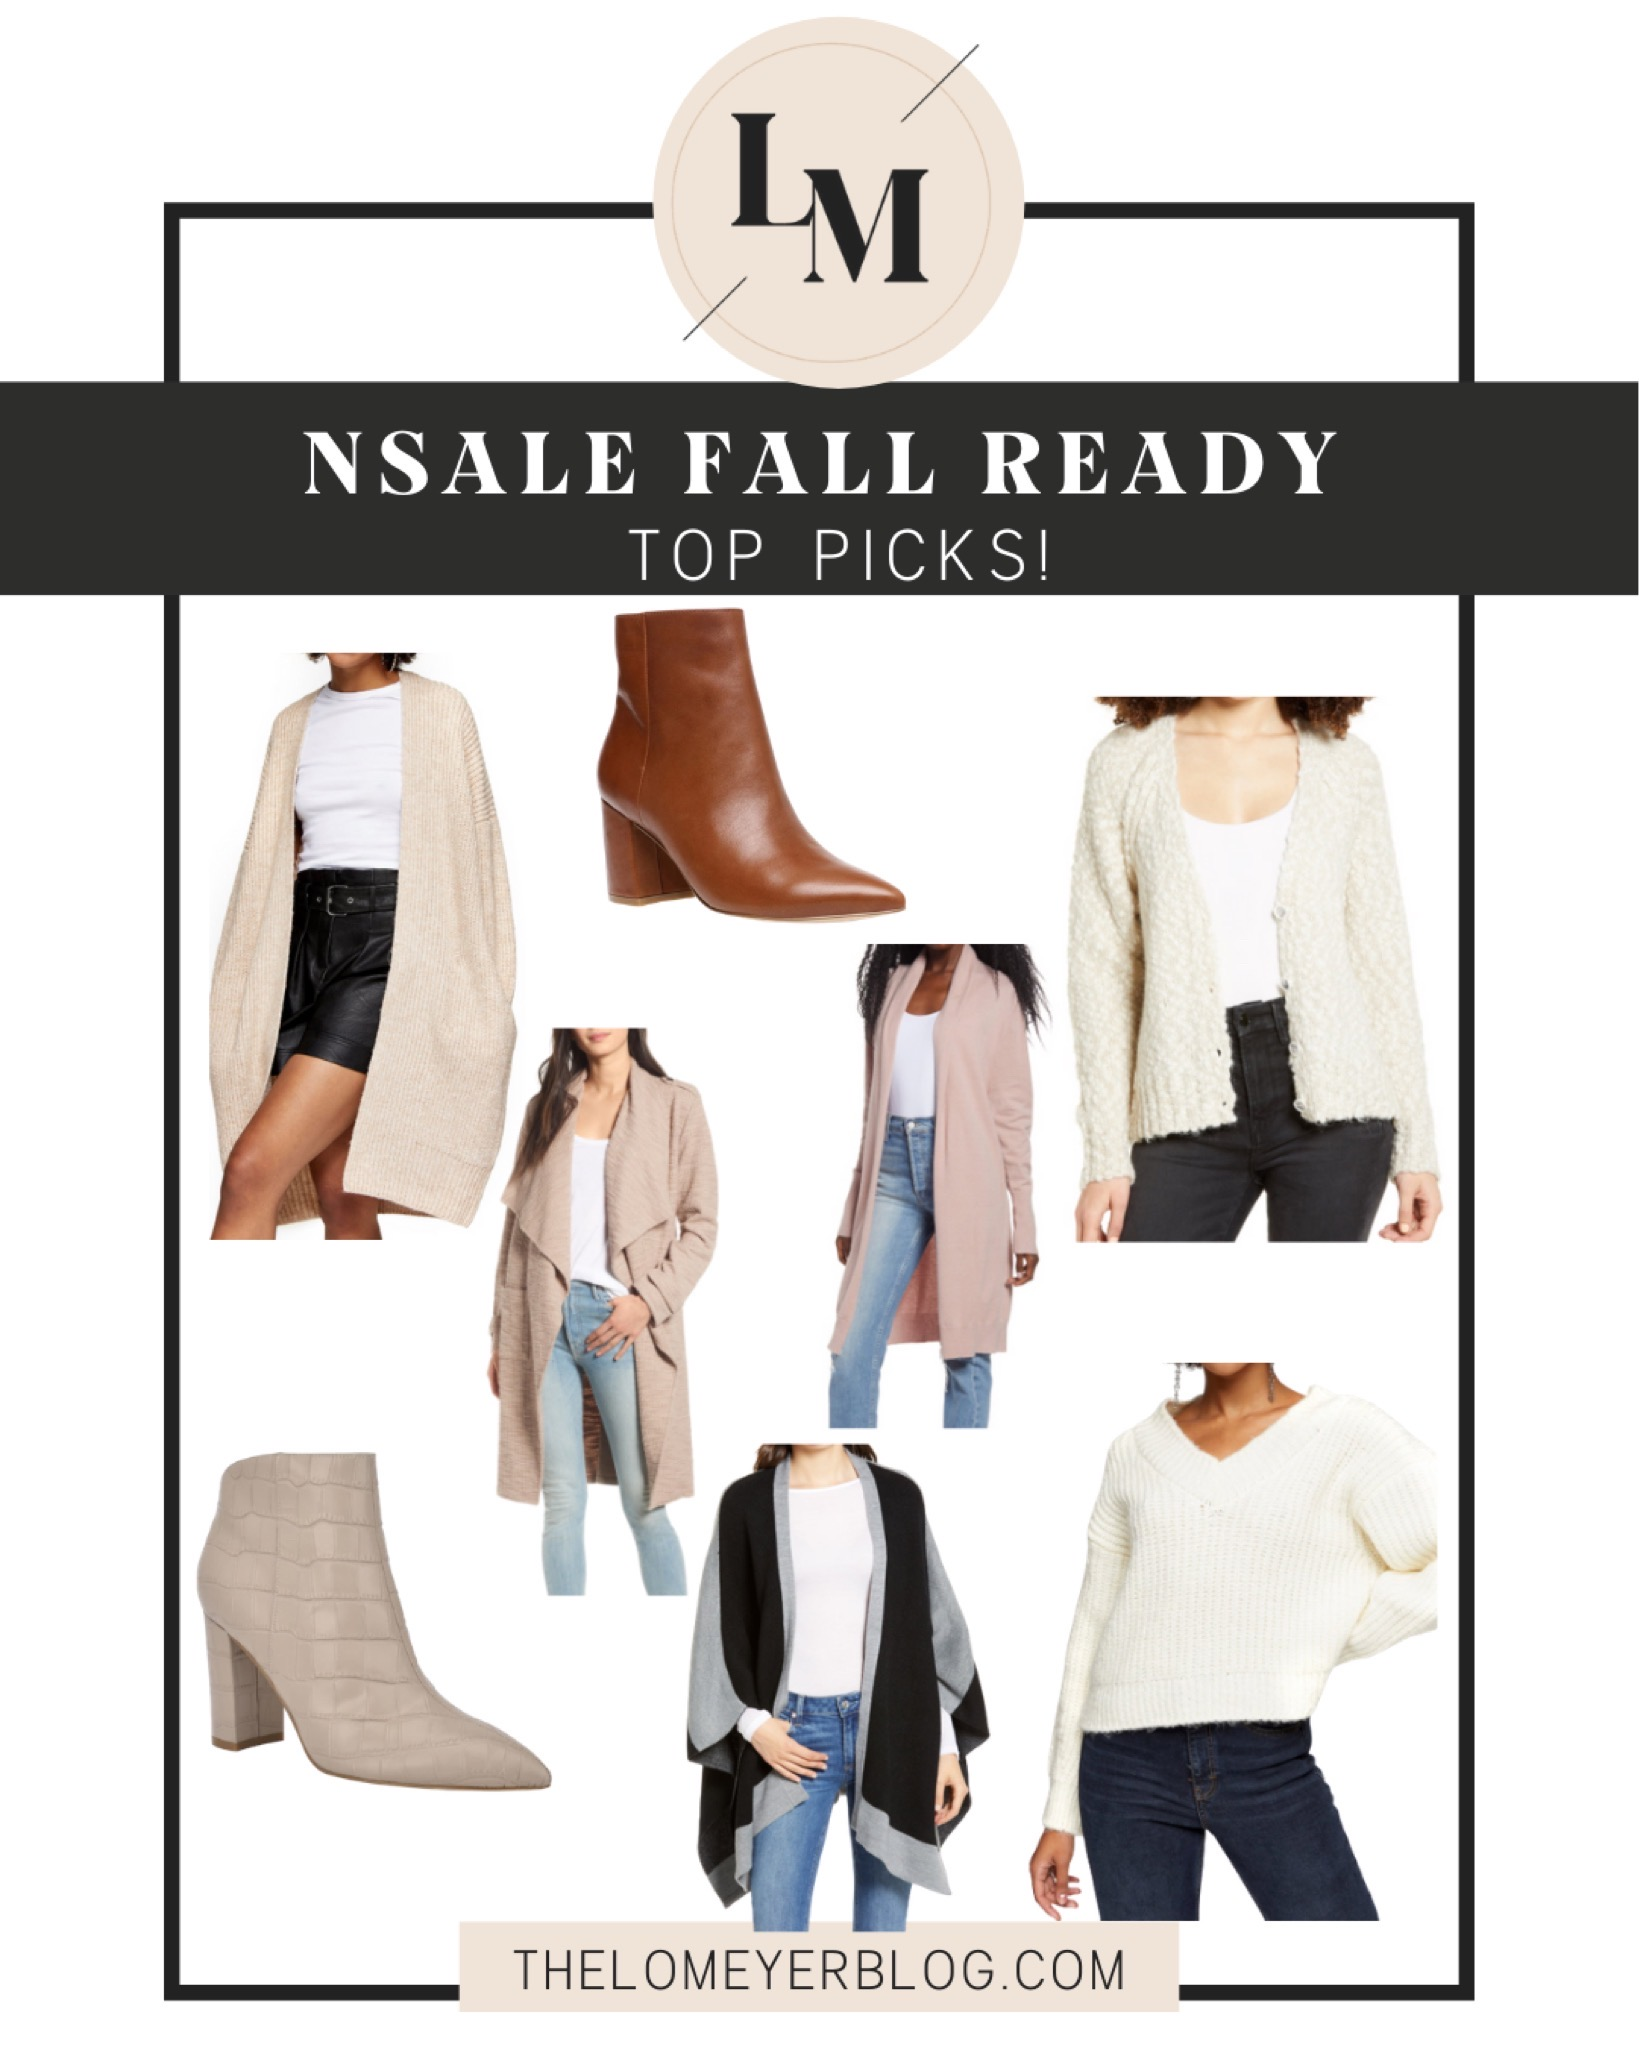 2020 Nordstrom Anniversary Sale Closet Staples | Lauren Meyer from The Lo Meyer Blog shares her top NSale Closet Staples